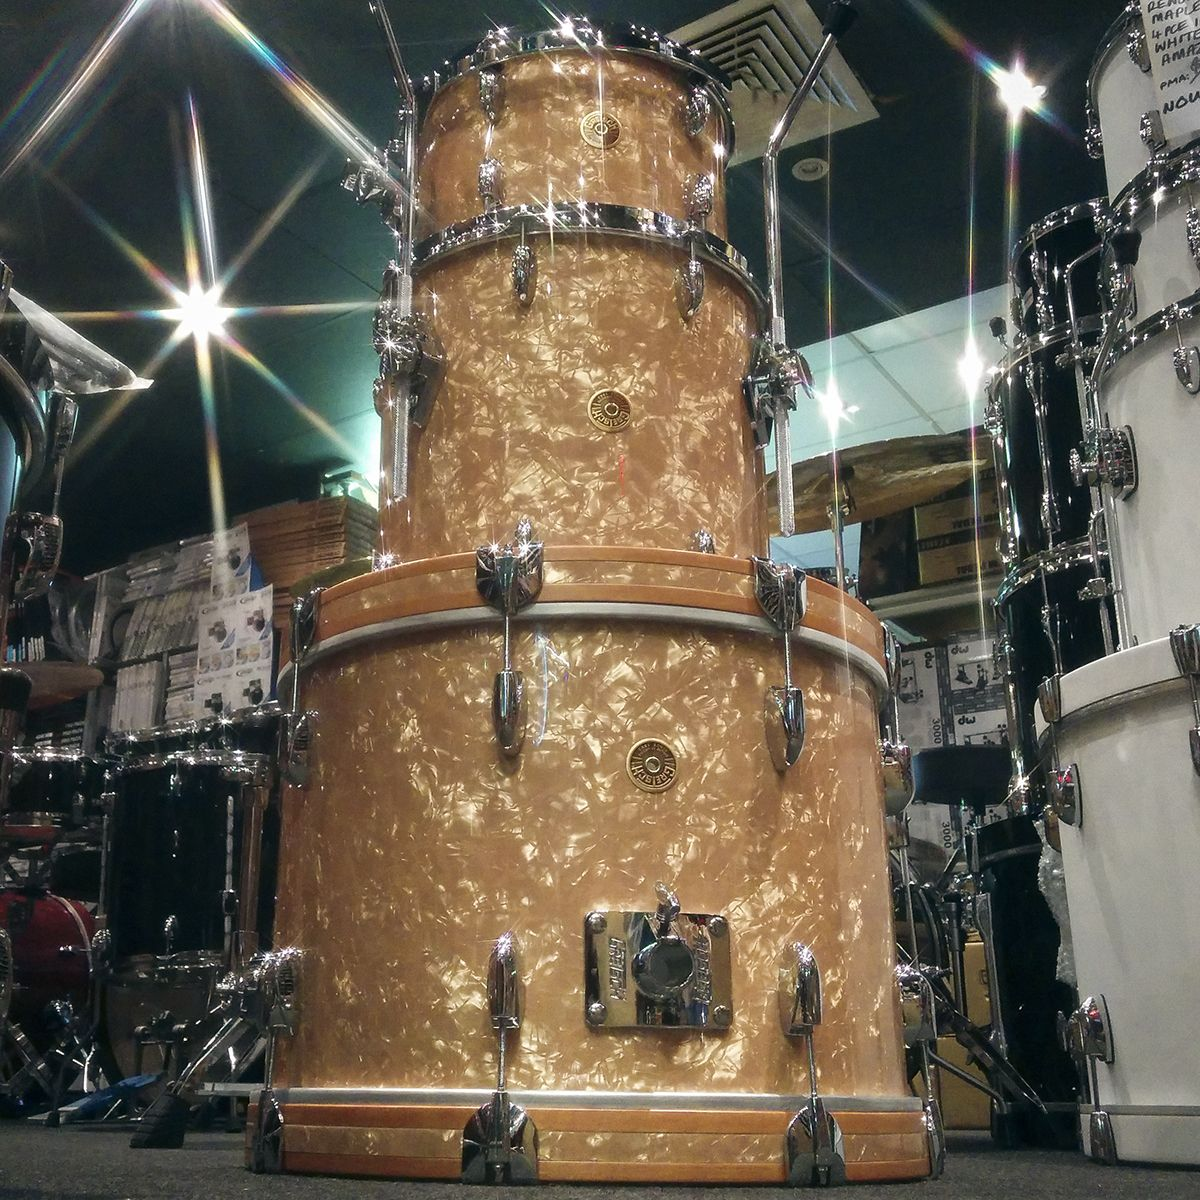 Grestch Broadkaster Drum Kit In Antique Pearl Nitron Finish With 20x14